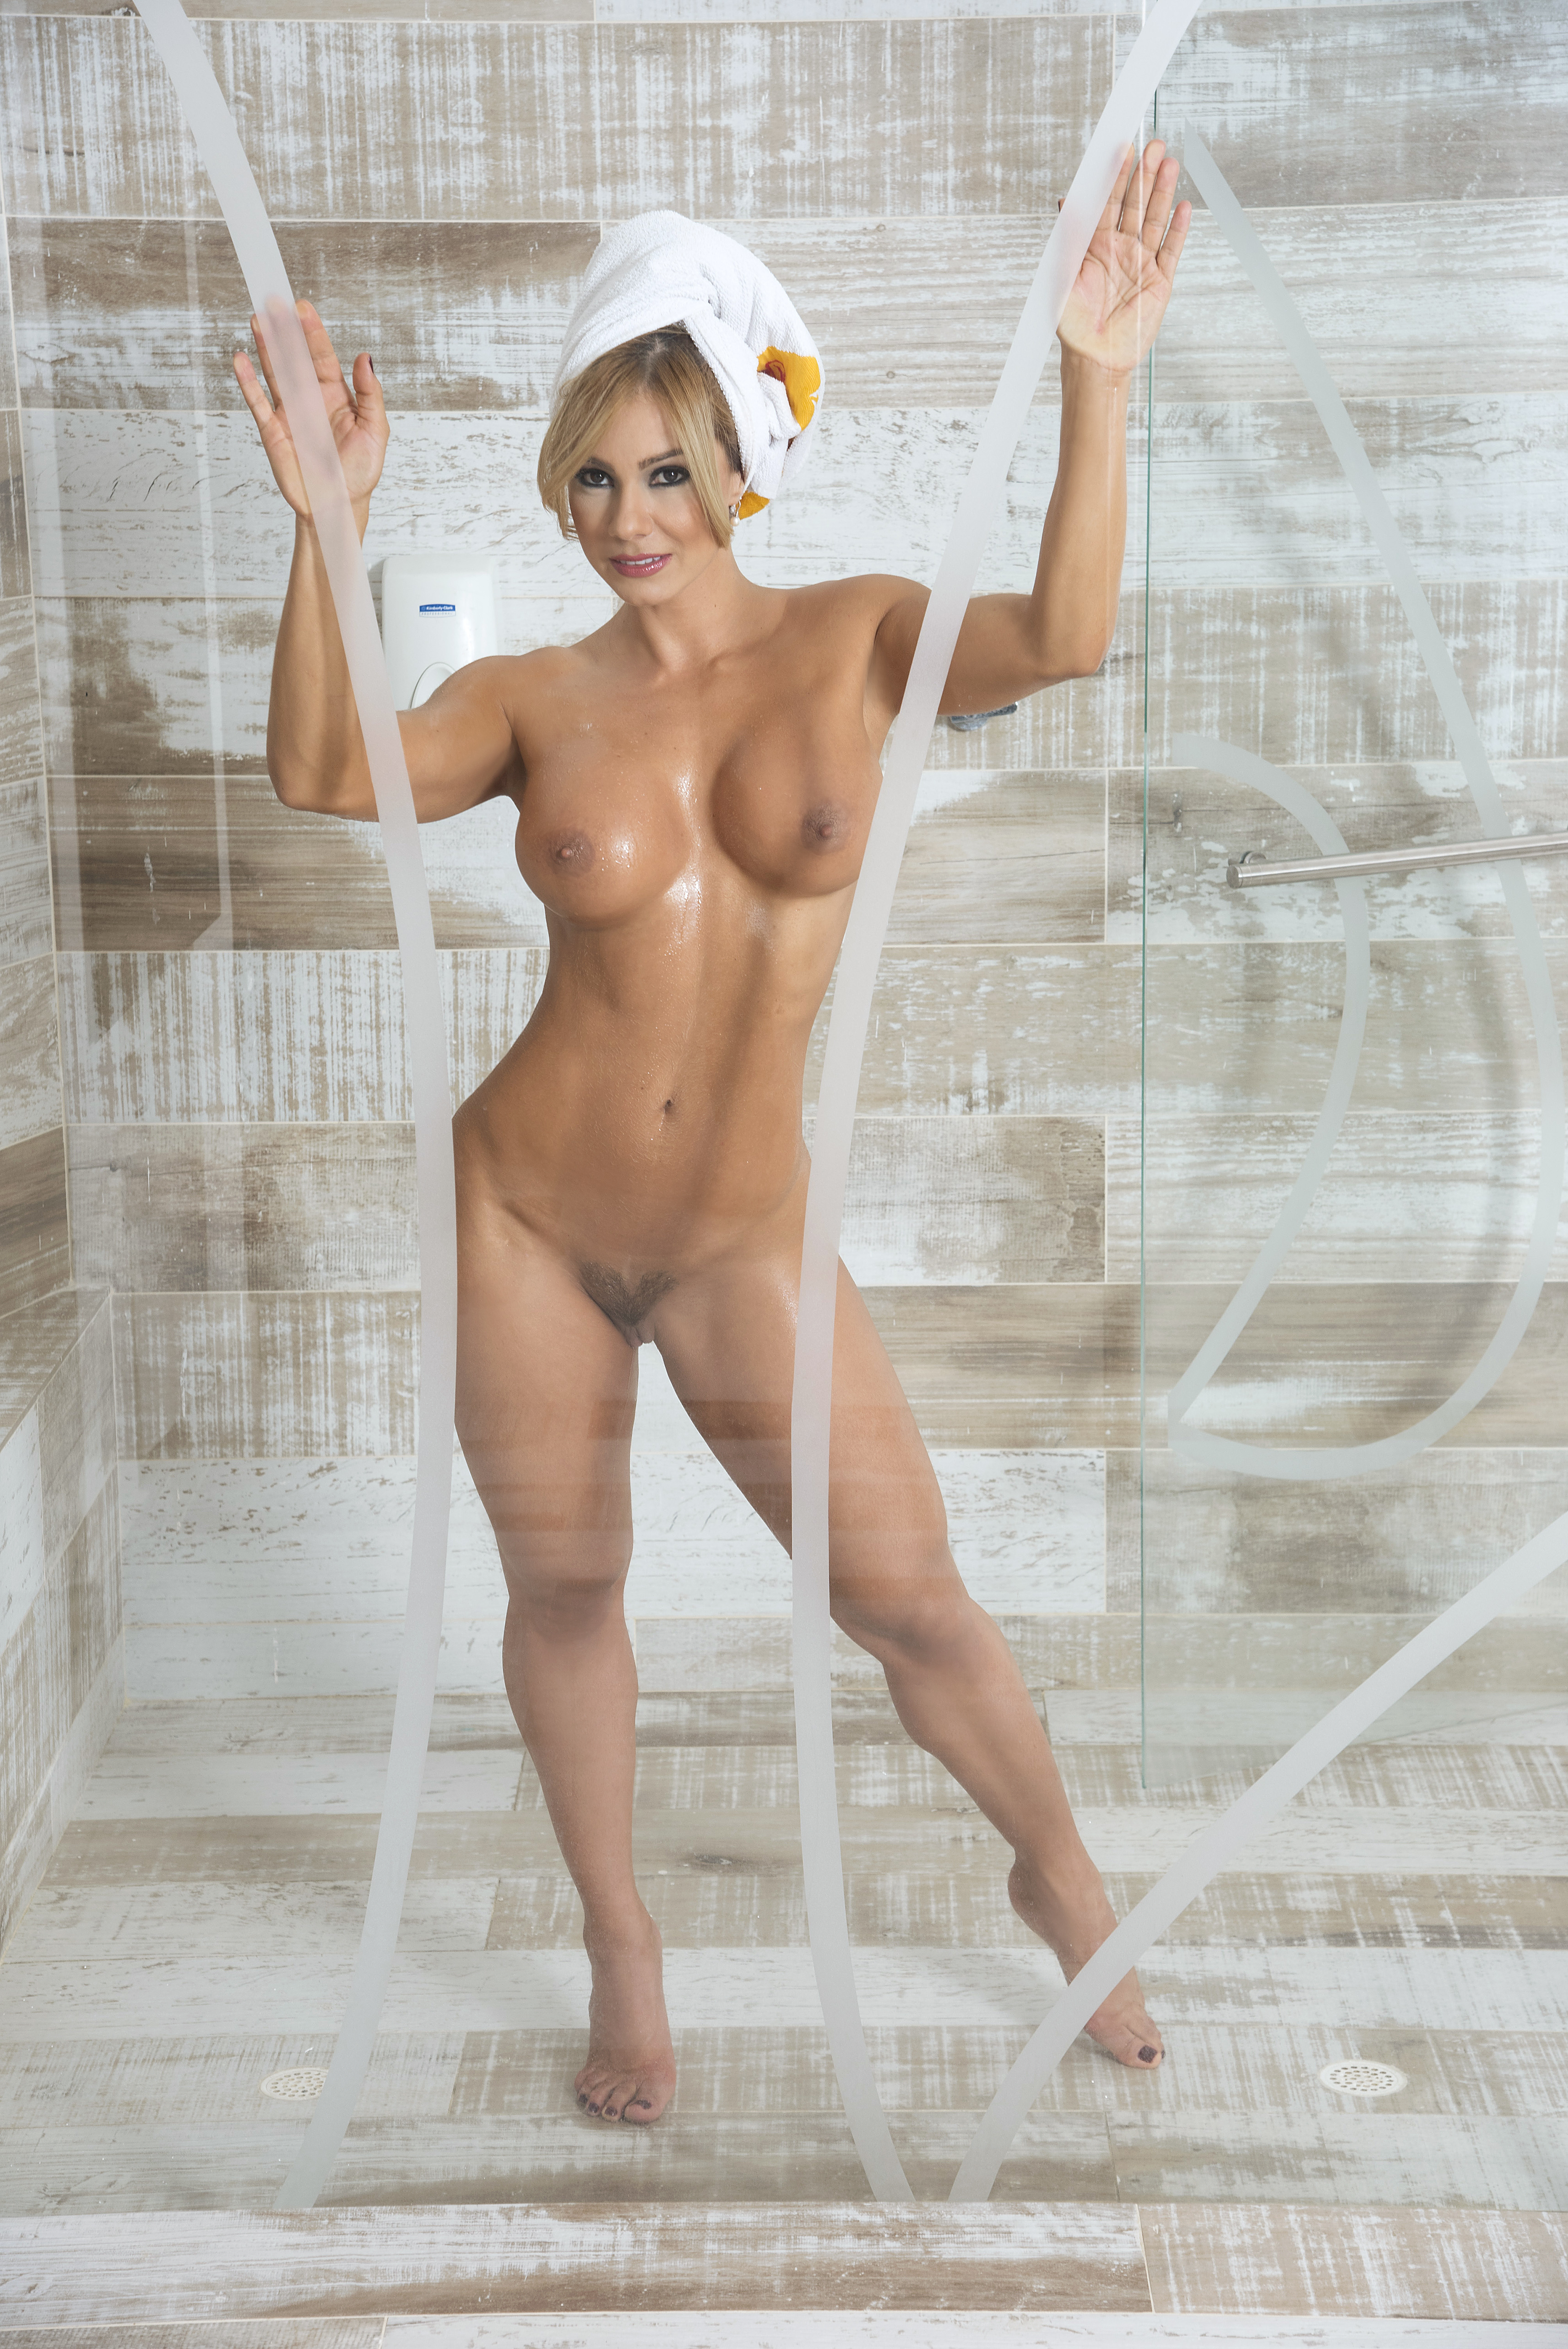 Nude babes in the shower